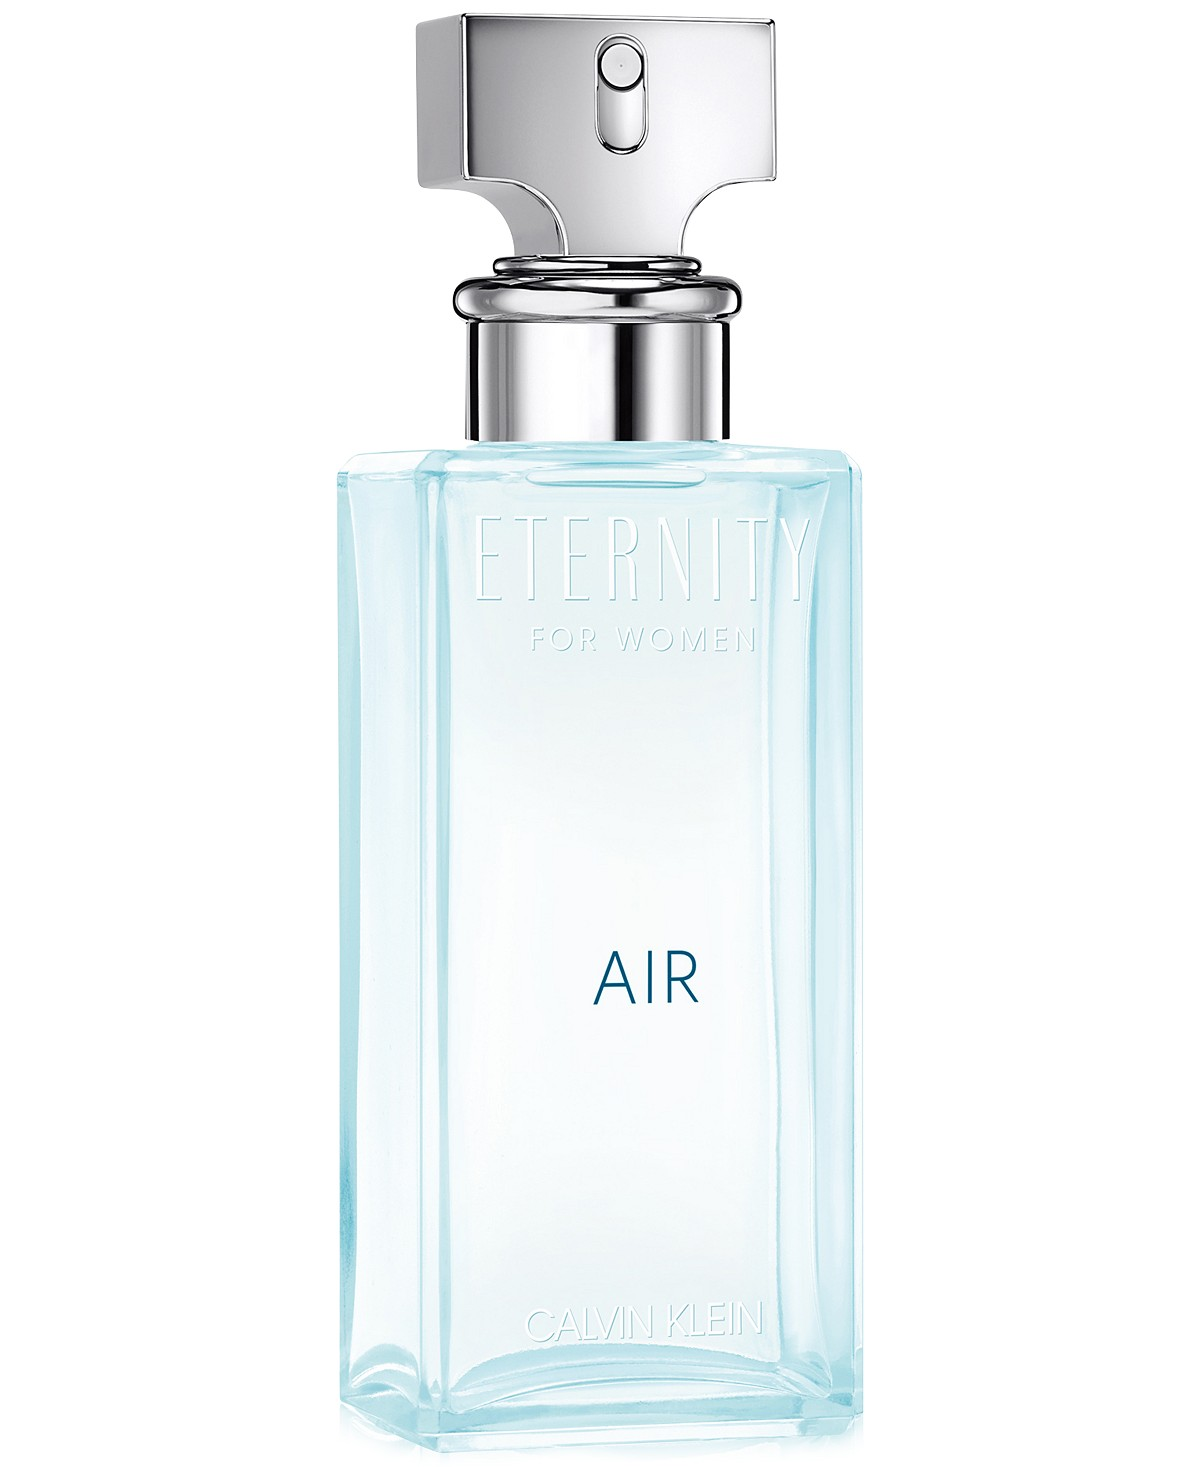 Eternity Air For Women Calvin Klein perfume - a novo fragrância ... 005bdc2d46